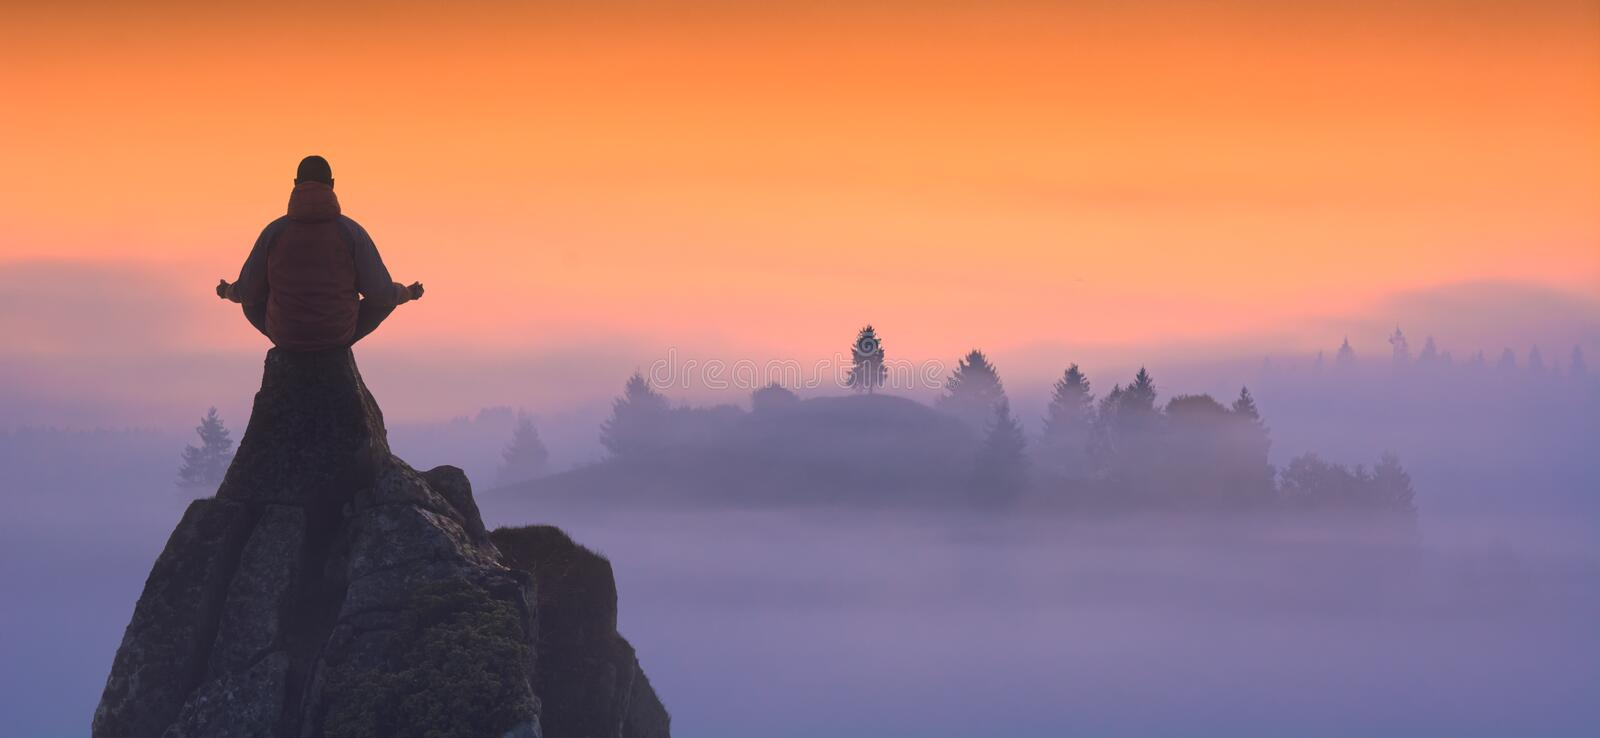 Morning meditation. Silhouette of human who meditating in sitting yoga position on the top of mountain against misty valley. Zen, meditation, peace stock images